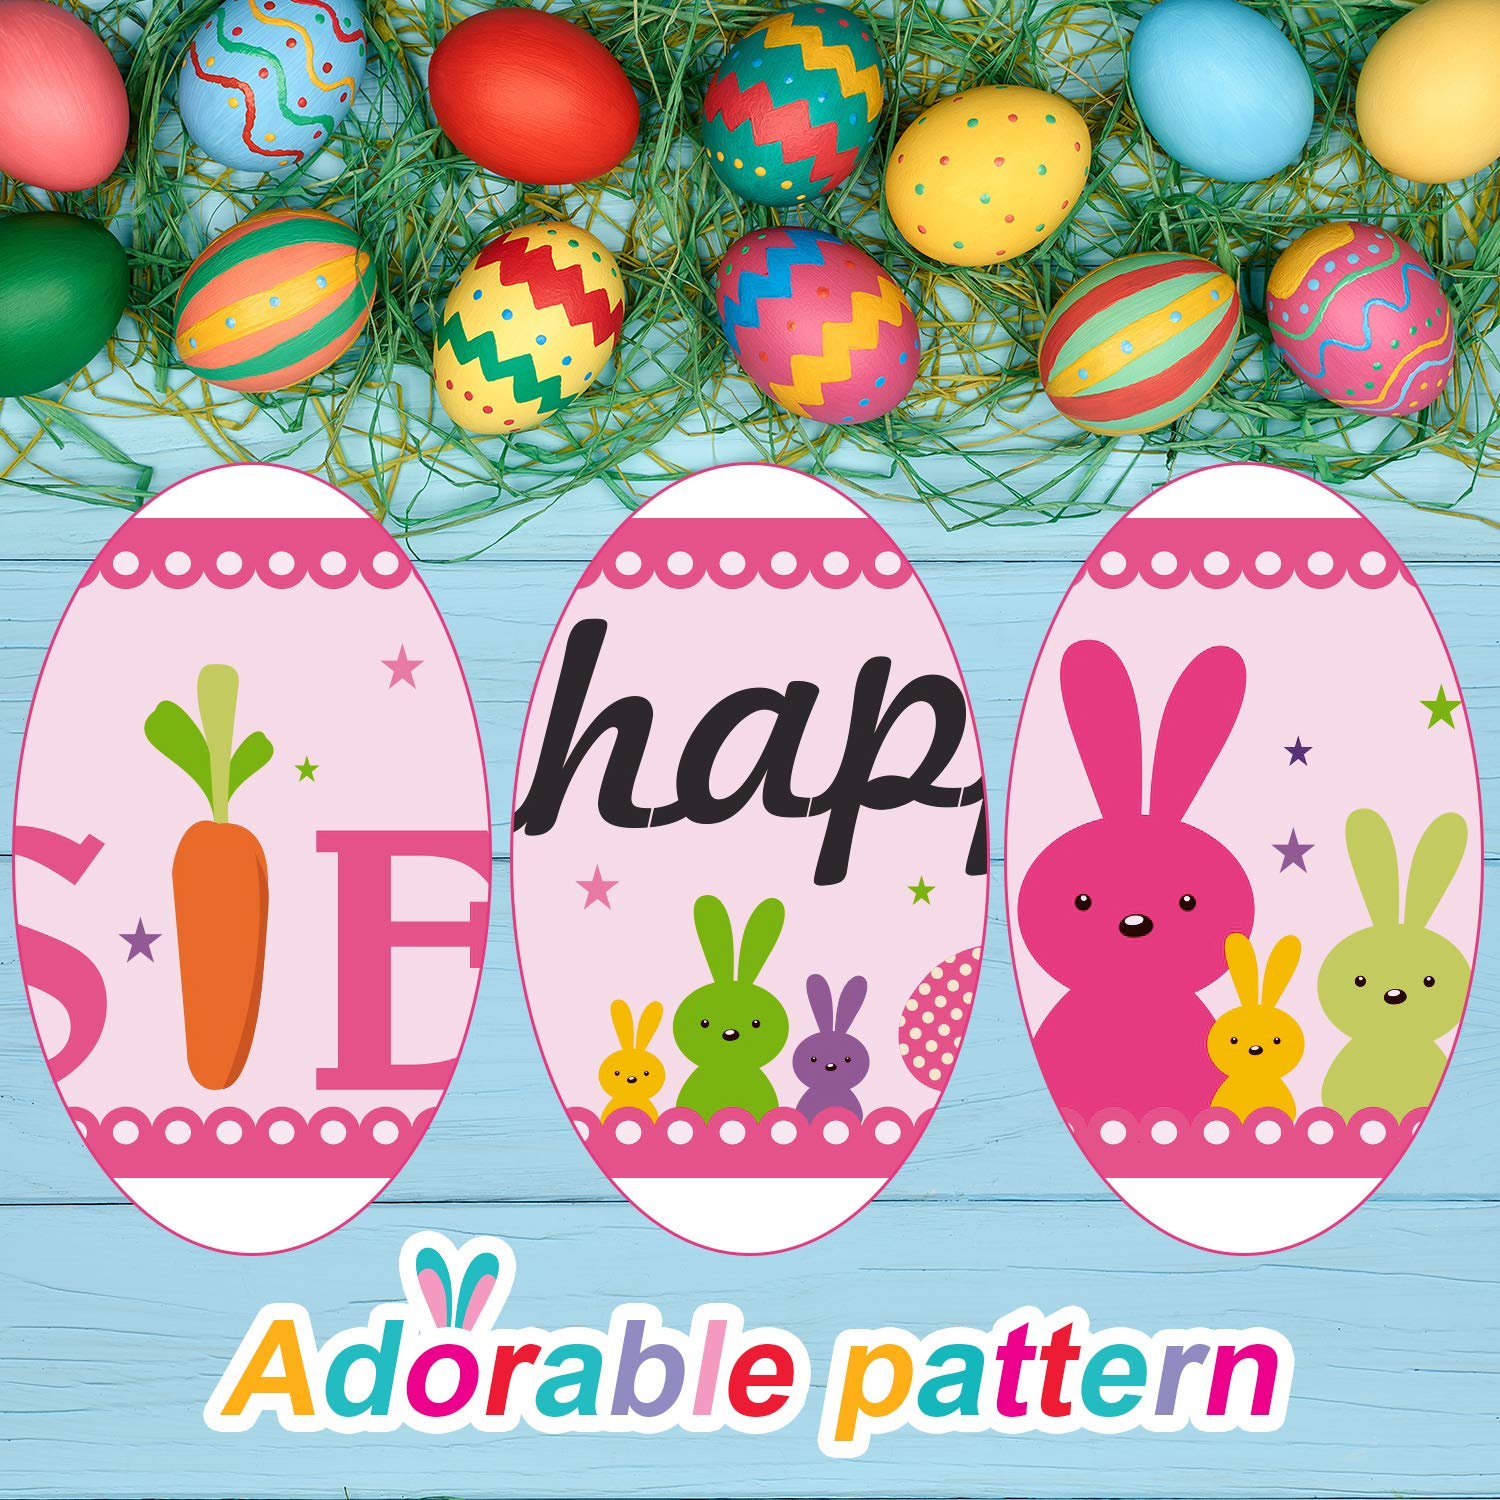 Frienda Happy Easter Banner Decorations Easter Pink Easter Bunny Egg Garland Easter Party Day Suppliers with 20 Glue Point Dots